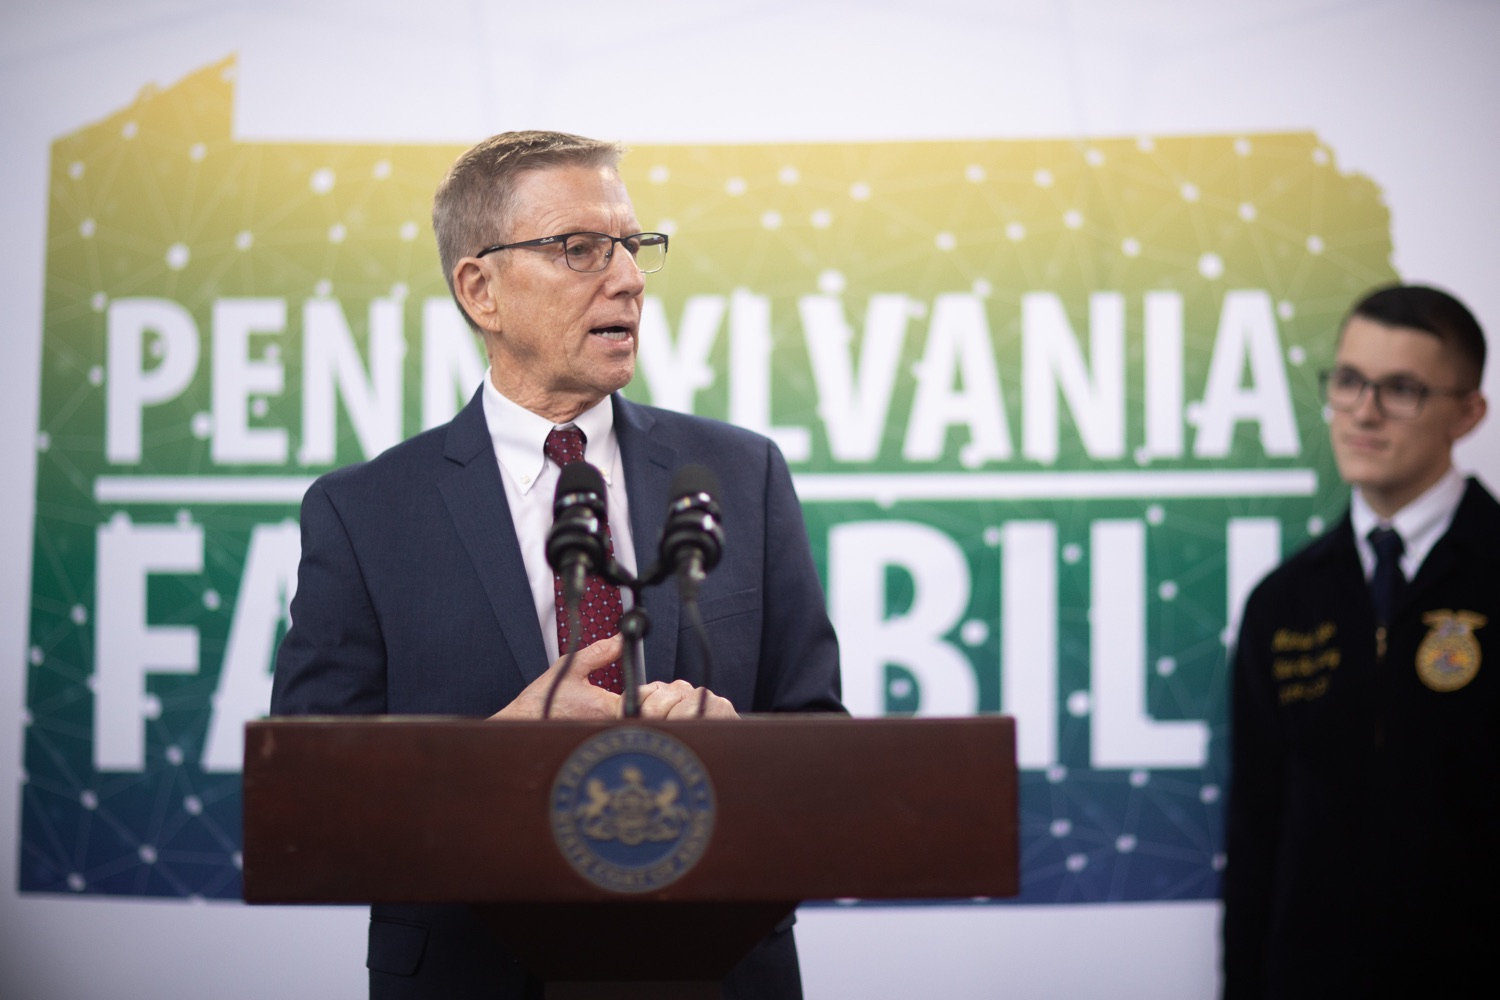 """<a href=""""http://filesource.abacast.com/commonwealthofpa/photo/17649_agric_youth_grant_farm_bill_dz_020.jpg"""" target=""""_blank"""">⇣Download Photo<br></a>Education Executive Deputy David Volkman speaking at the announcement. Governor Tom Wolf today announced the approval of $500,000 in Ag and Youth Grants to fund 55 projects that will improve access to agriculture education in the commonwealth, with a goal of addressing the looming 75,000 workforce deficit Pennsylvanias agriculture industry faces in the coming decade. Harrisburg, PA  January 6, 2020"""